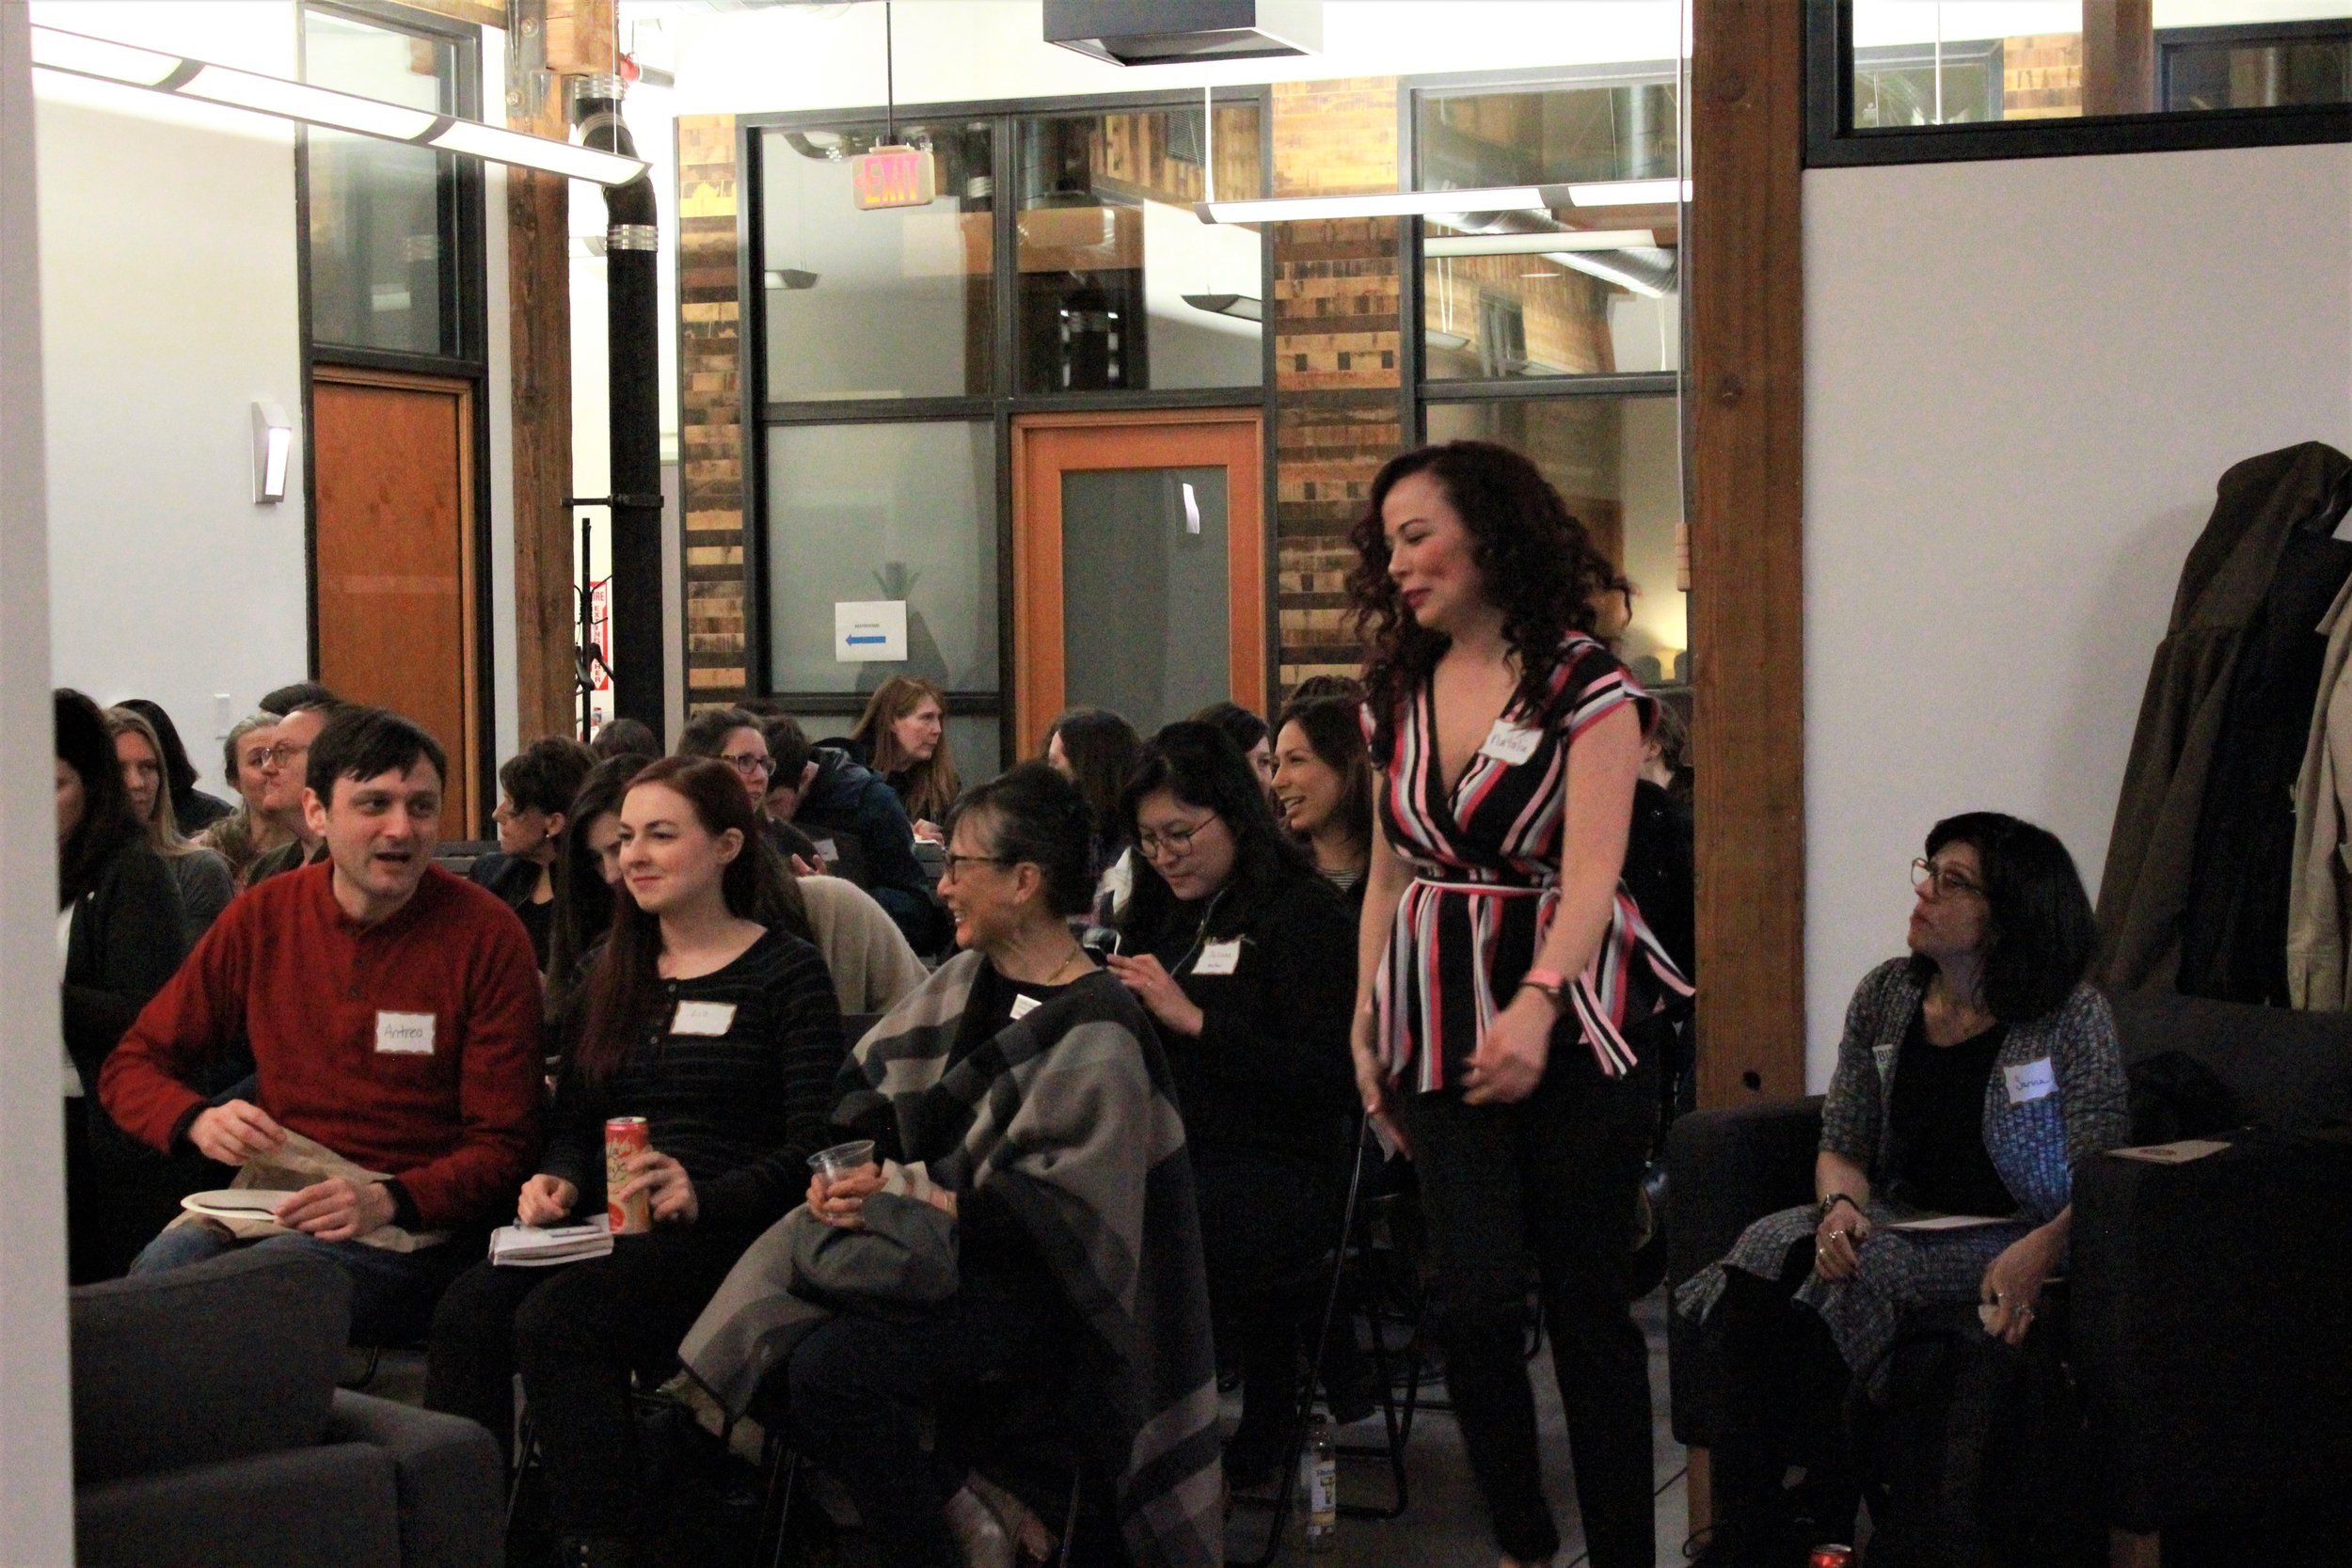 PDXWIT Creative Women in Tech @ R2C, 3/27/19, Attendees mingle